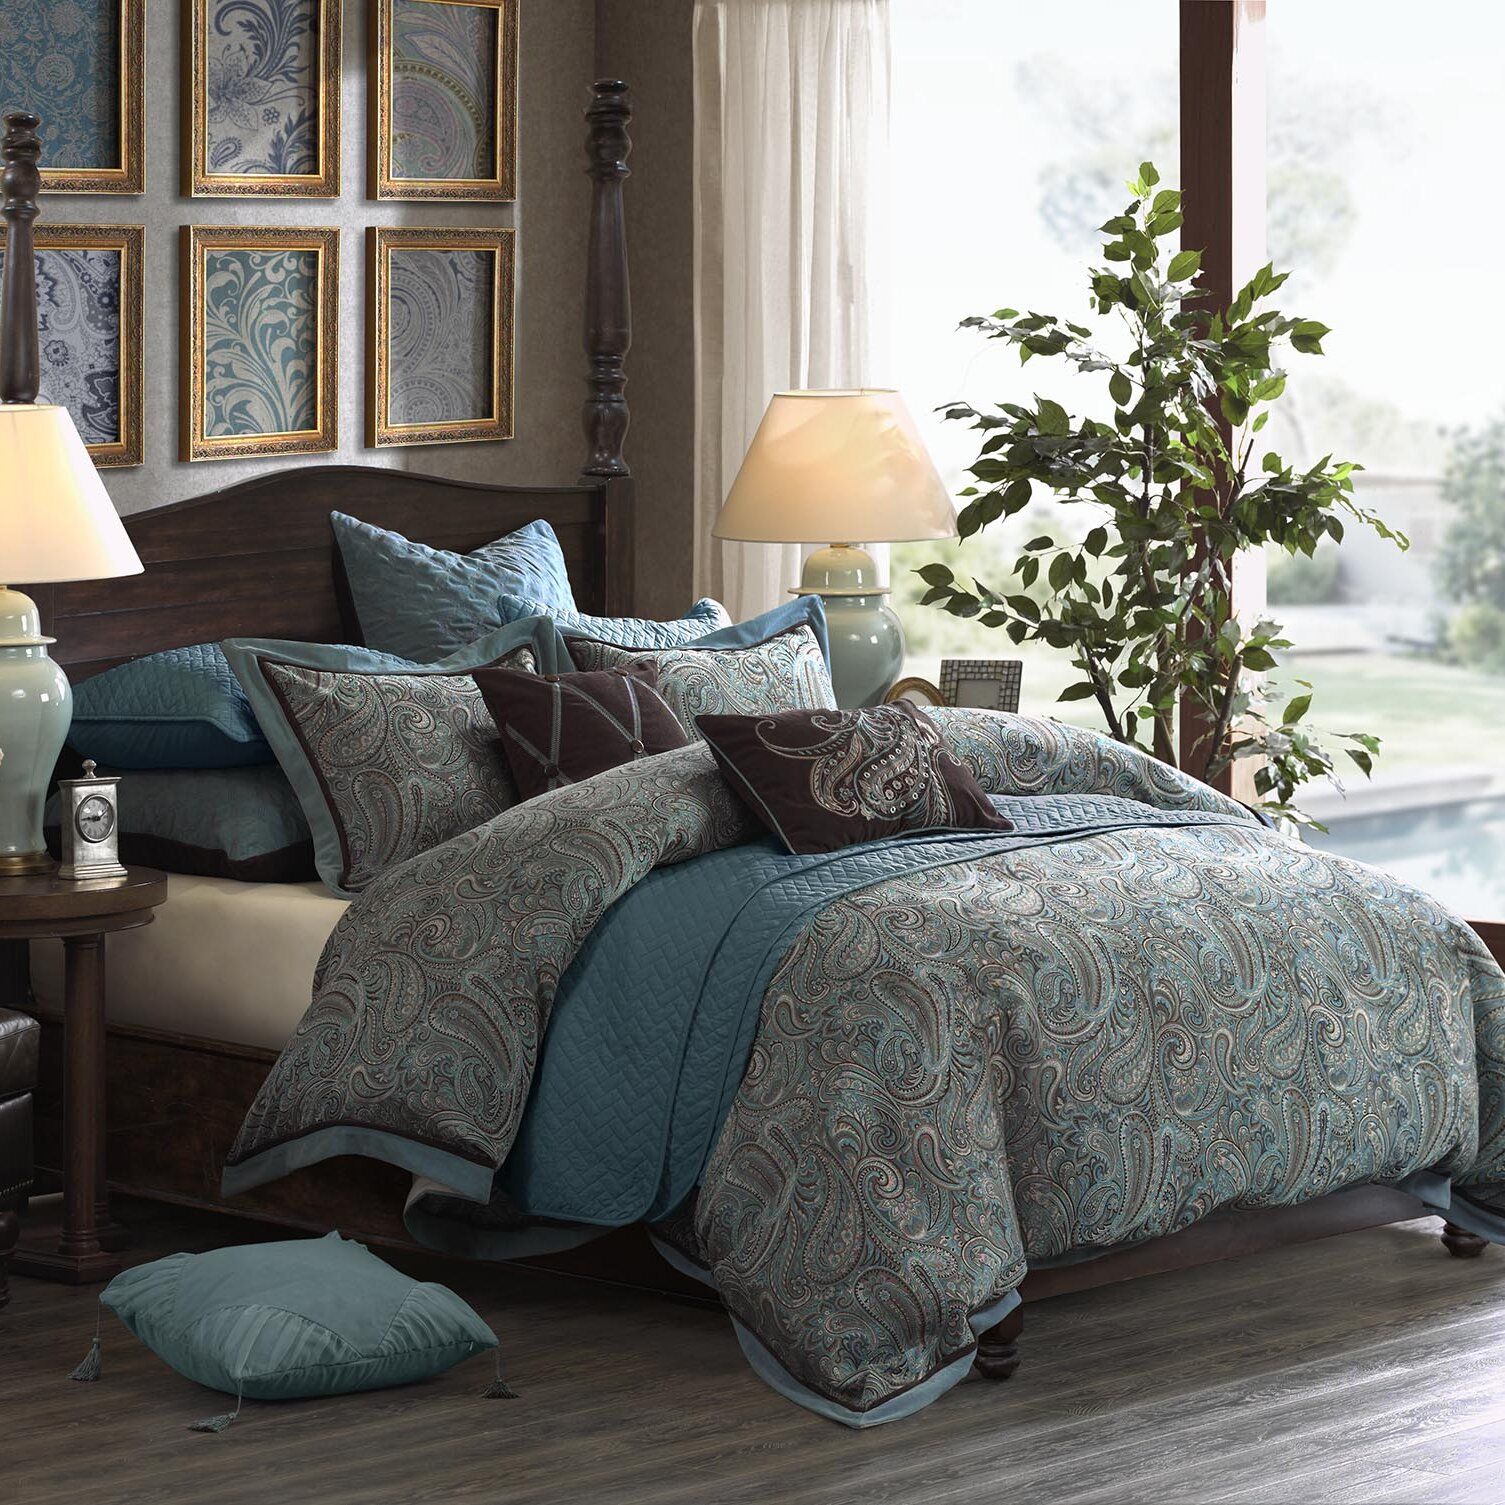 creamstripes retro nicole staggering lauren ah cheerful silver miller bedding by sets king ralph set cover comforter duvet piece